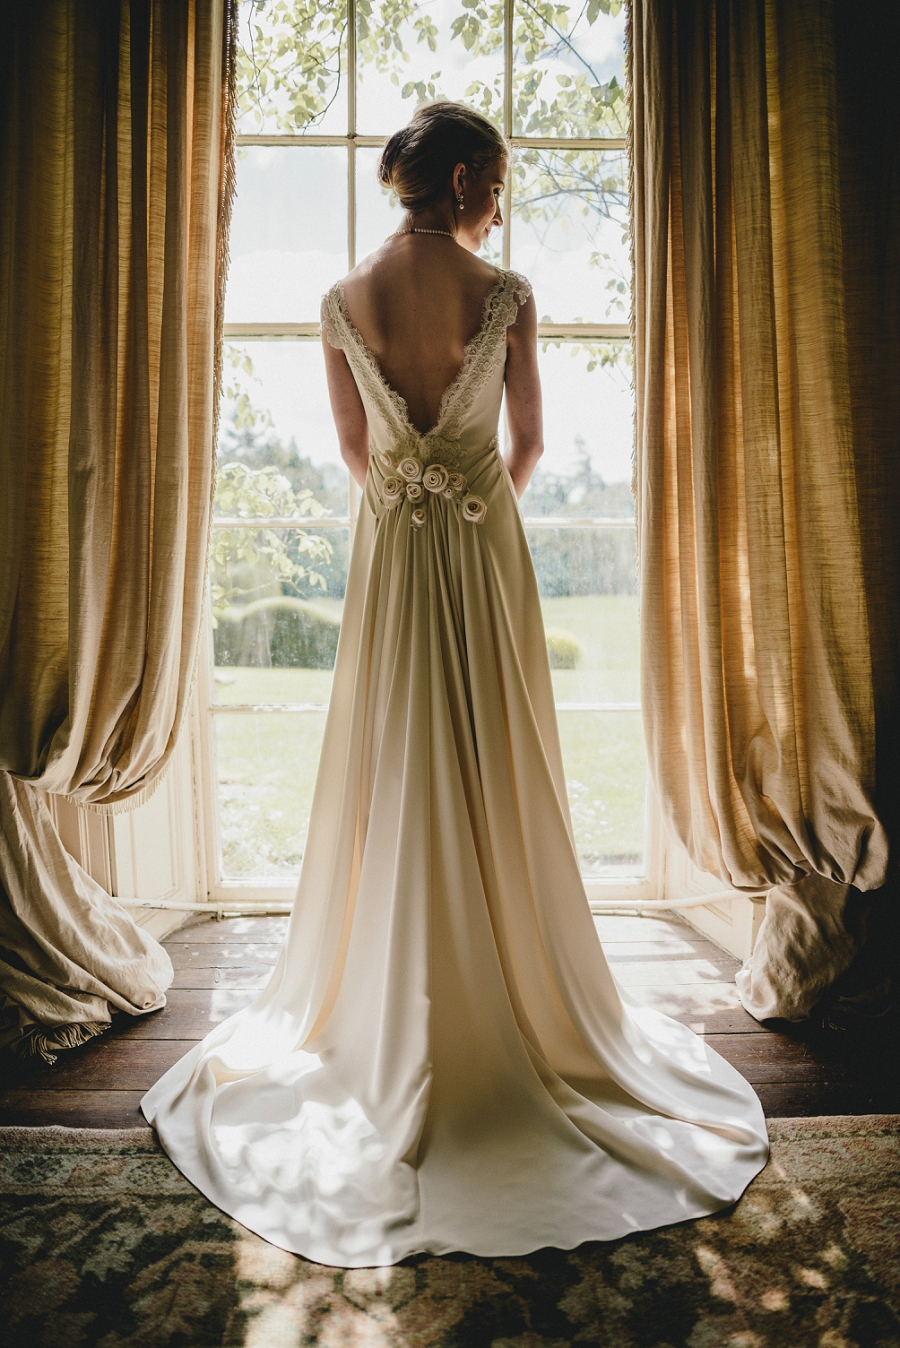 Heirloom wedding inspiration with Emily Andrews Events at Thurning Hall. Photo credit Benjamin Mathers Photography (2)